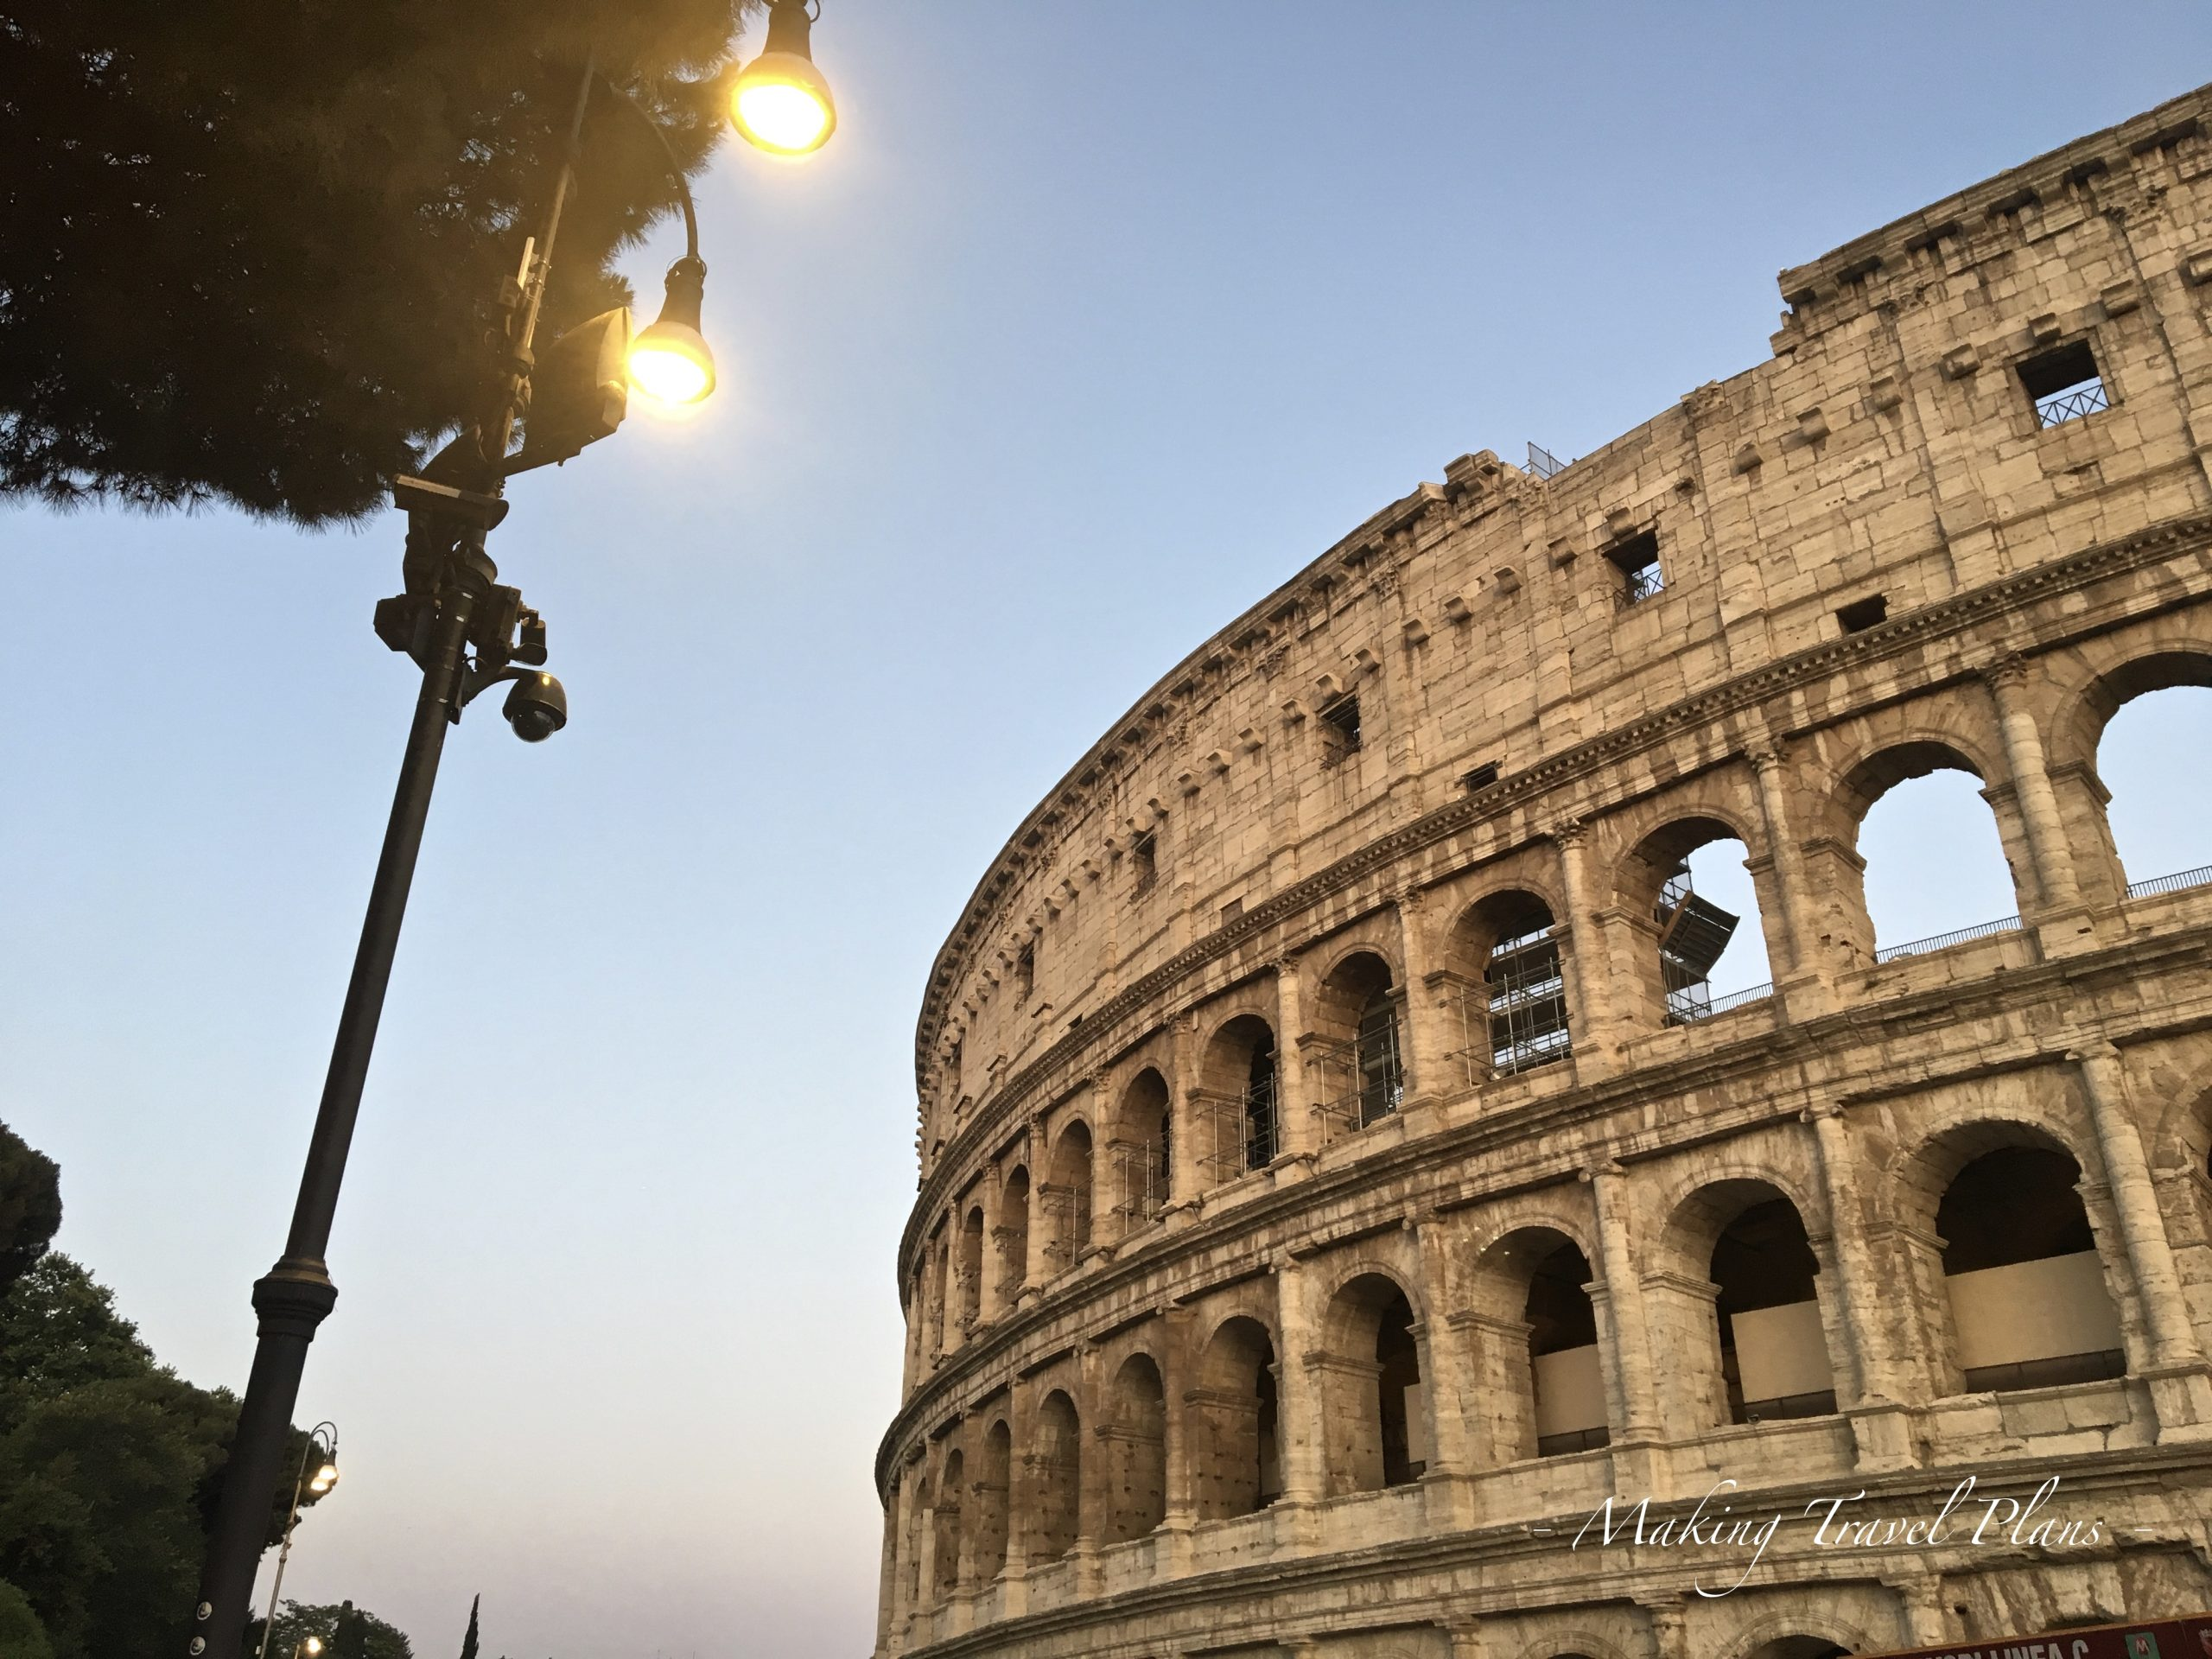 Roman Colosseum: 10 interesting facts about the Italian icon.